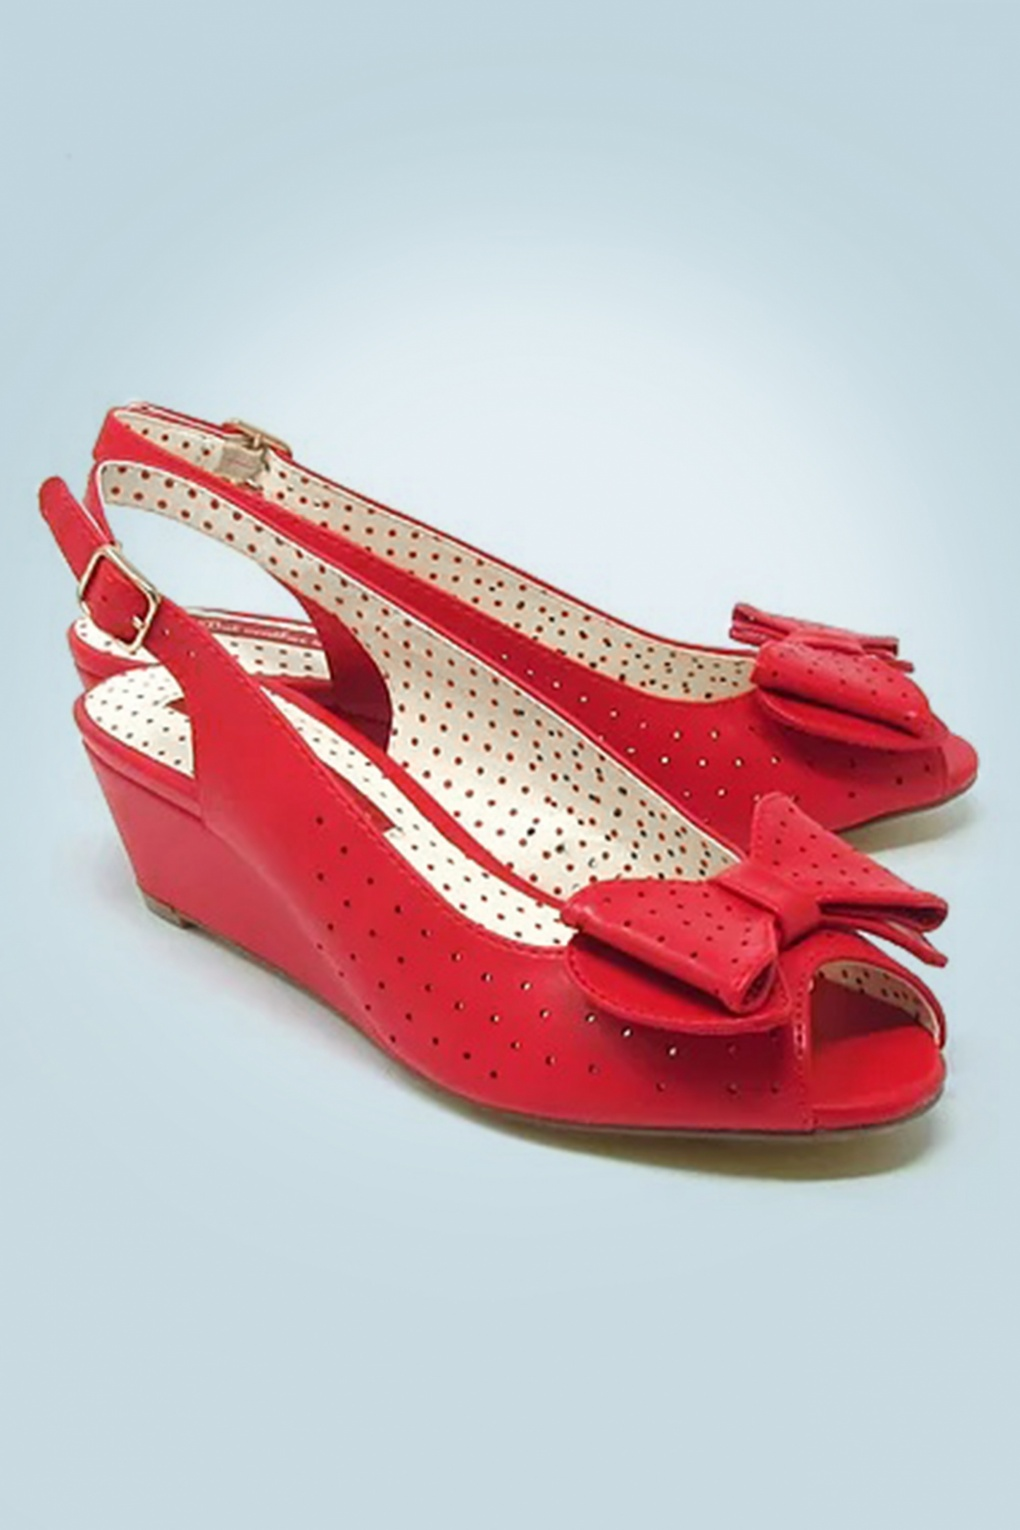 Pin Up Shoes- Heels, Pumps & Flats 50s Jasmine Wedge Peeptoes in Red �66.43 AT vintagedancer.com